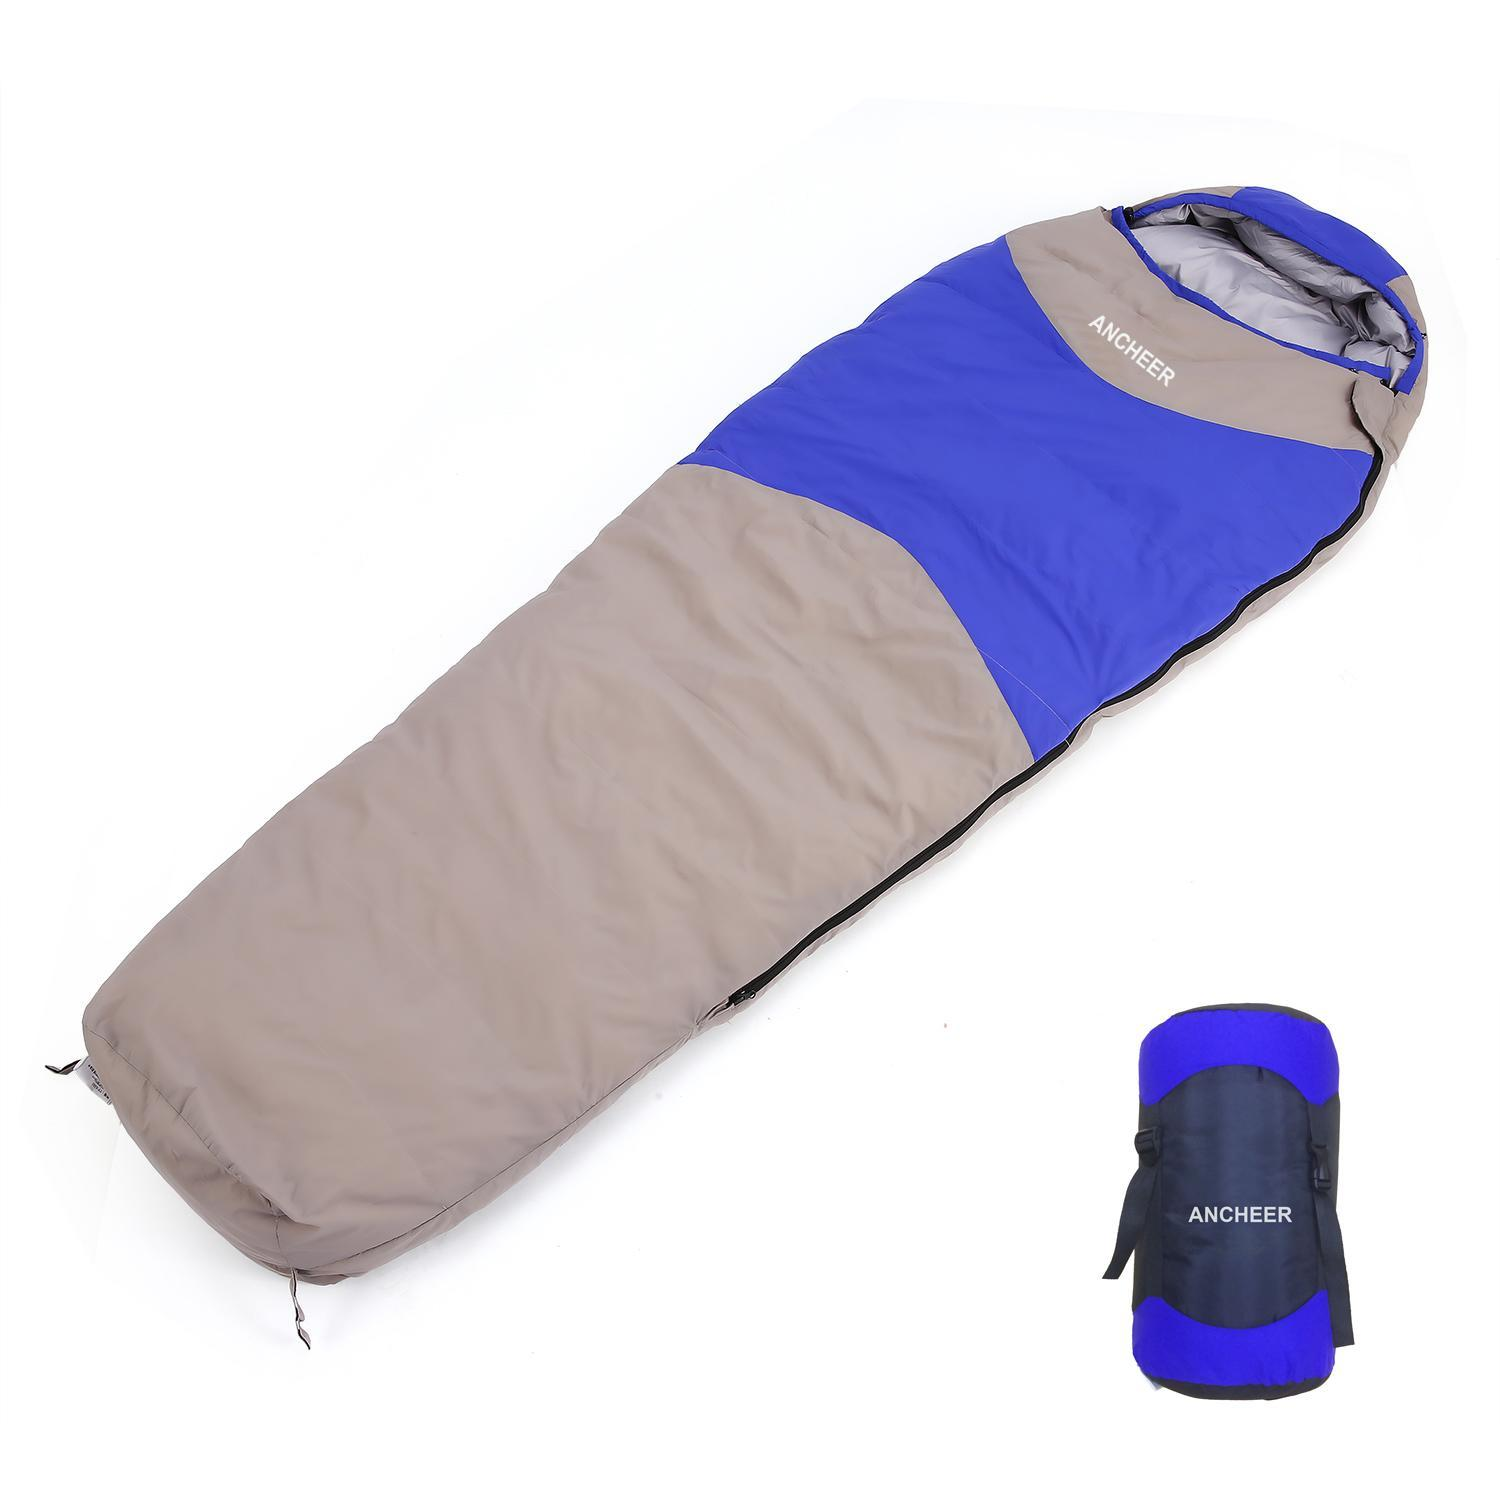 Fashion 15 Degree Ultralight Mummy Down Sleeping Bag Winter for Camping Hiking Travel ROJE by